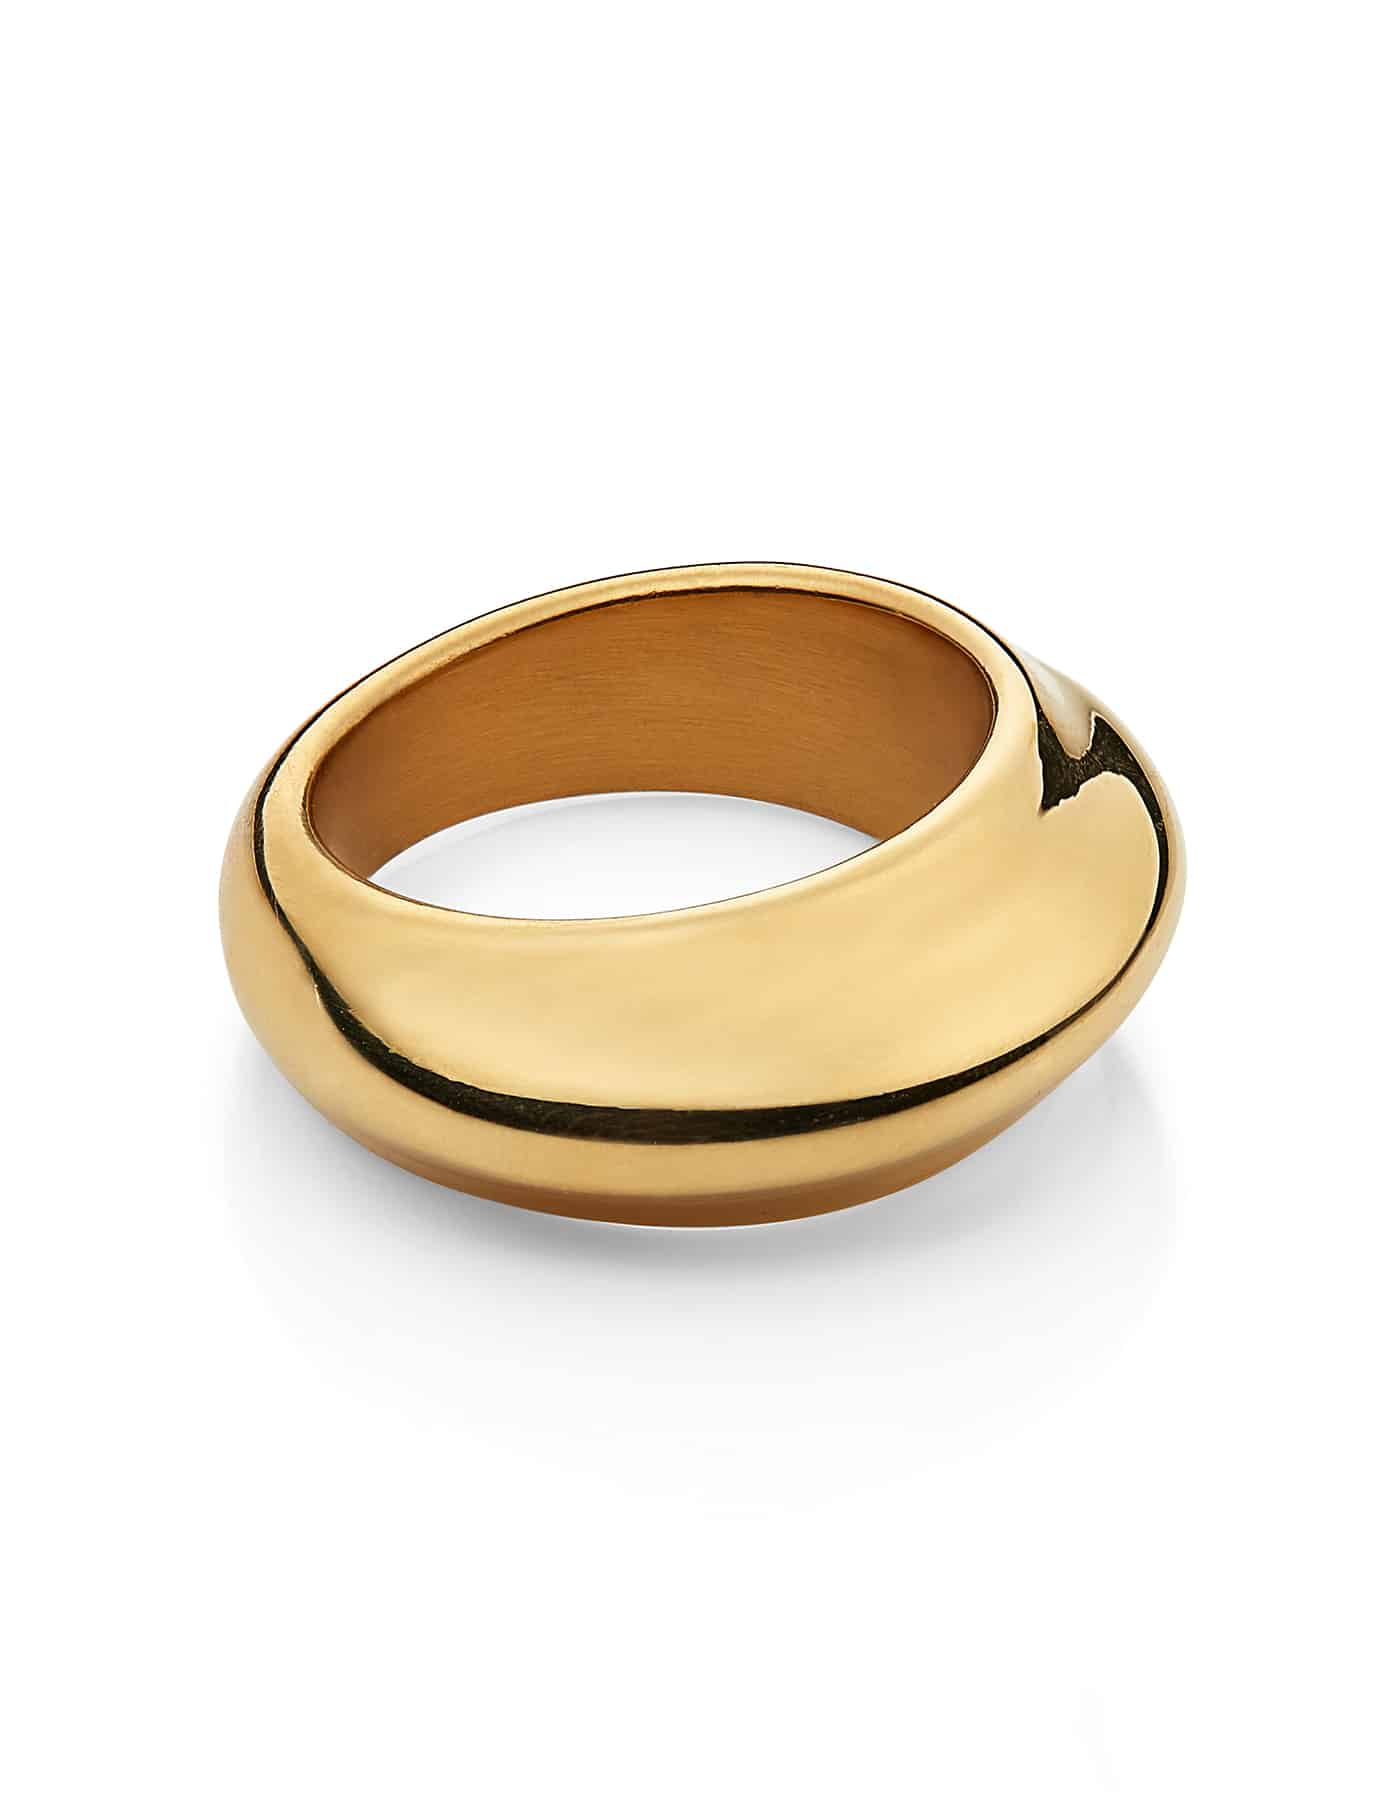 Gold Dome Ring, Forever Lasting